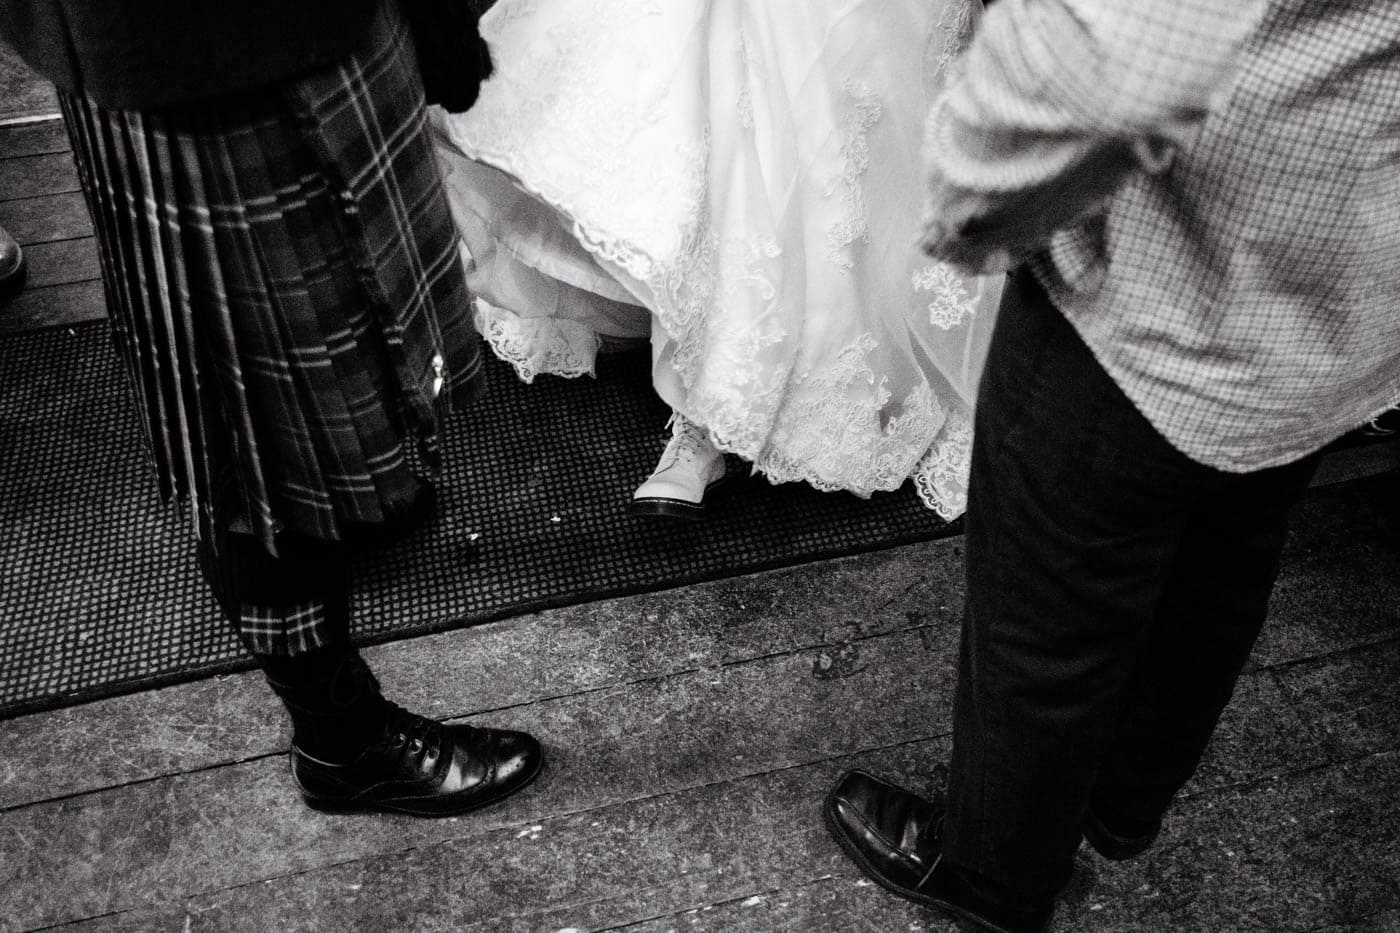 Bride showing off her white Doc Marten's boots